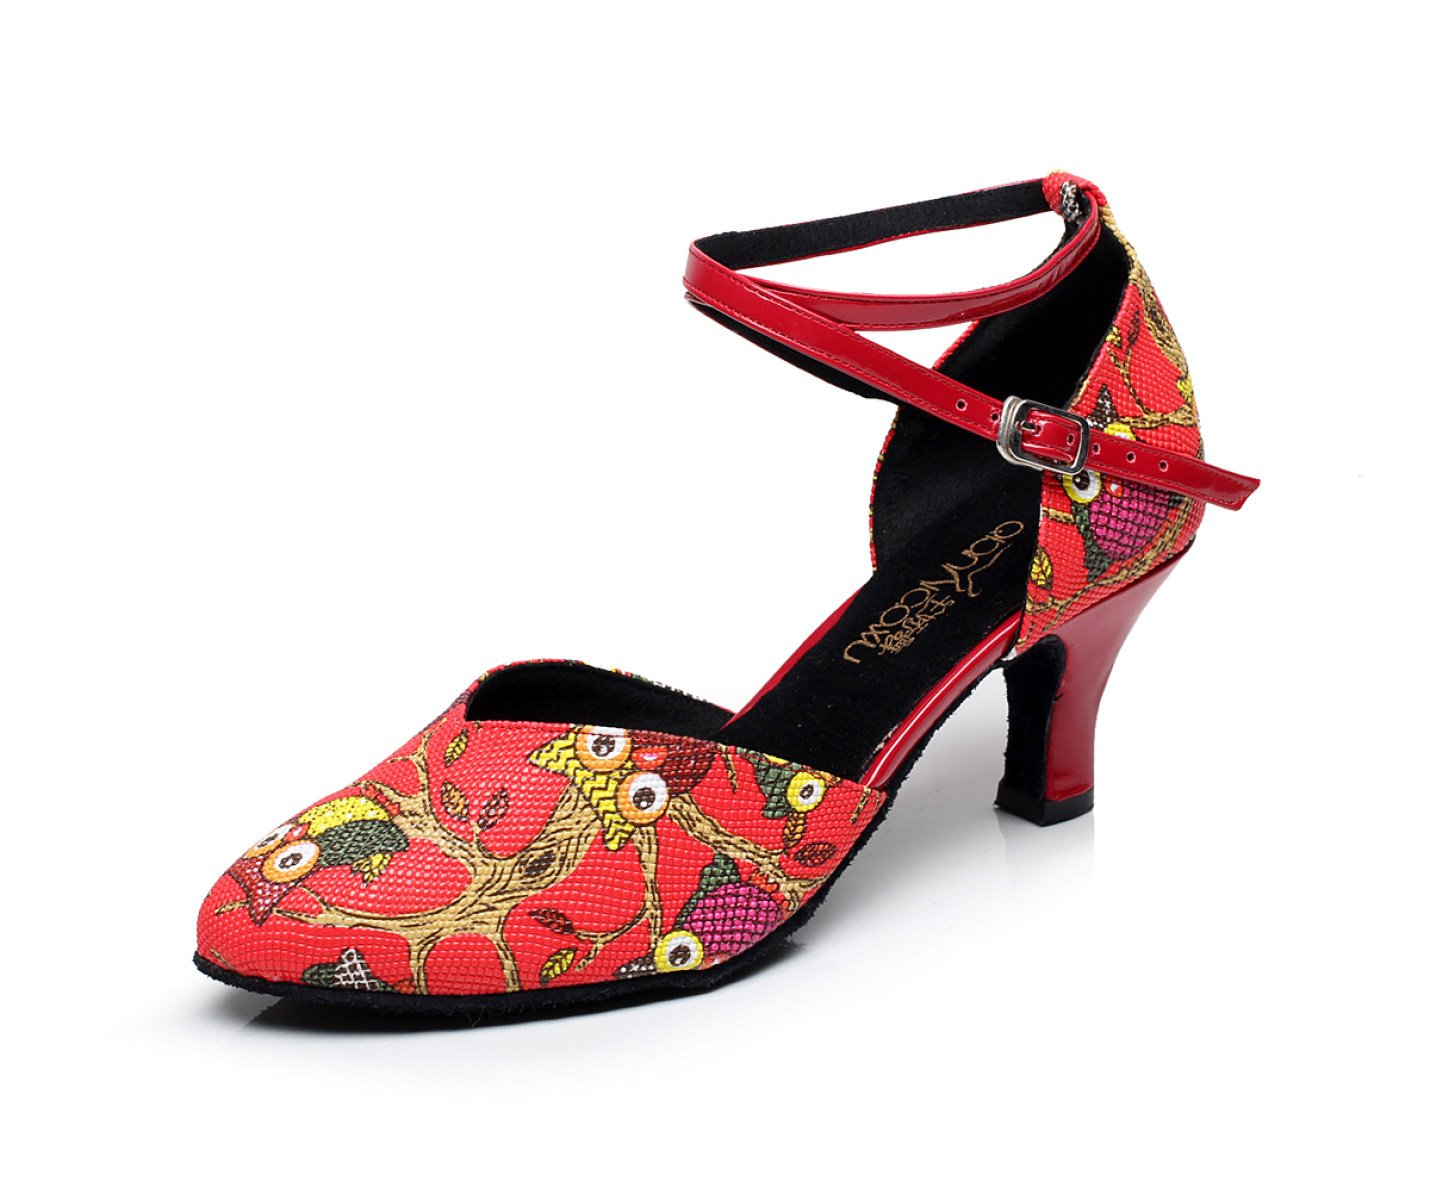 JSHOE Cross Damen Cross JSHOE Strap Leder Latin Salsa Ballroom Dance,ROT-heeled5cm-UK3/EU33/Our34 - 7215fd